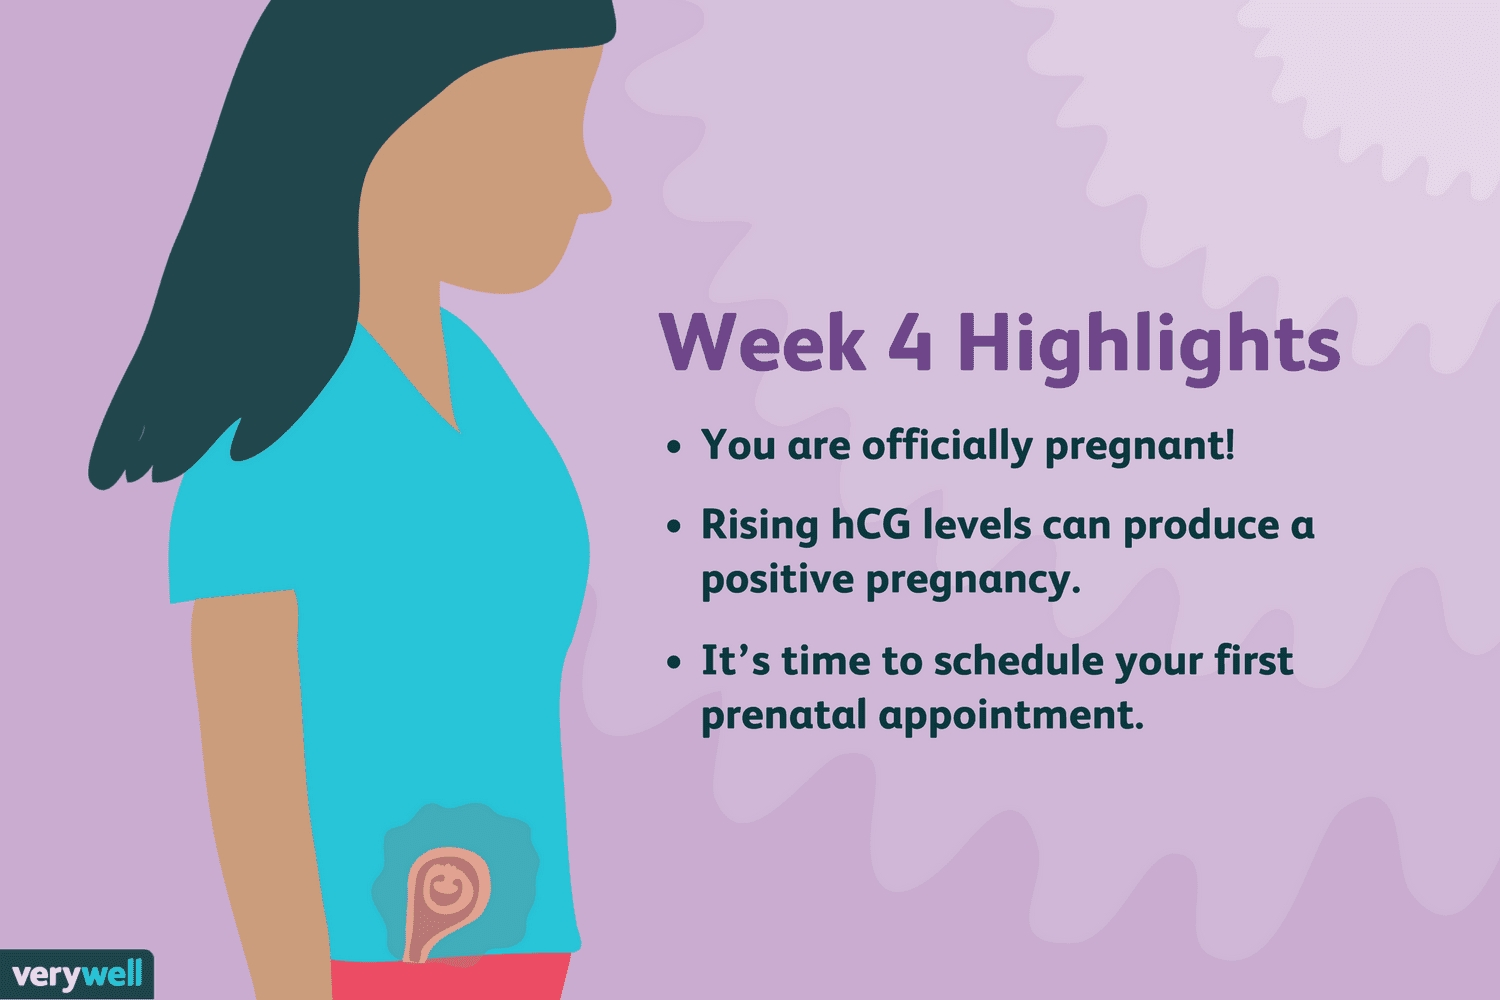 4 Weeks Pregnant: Symptoms, Baby Development, And More